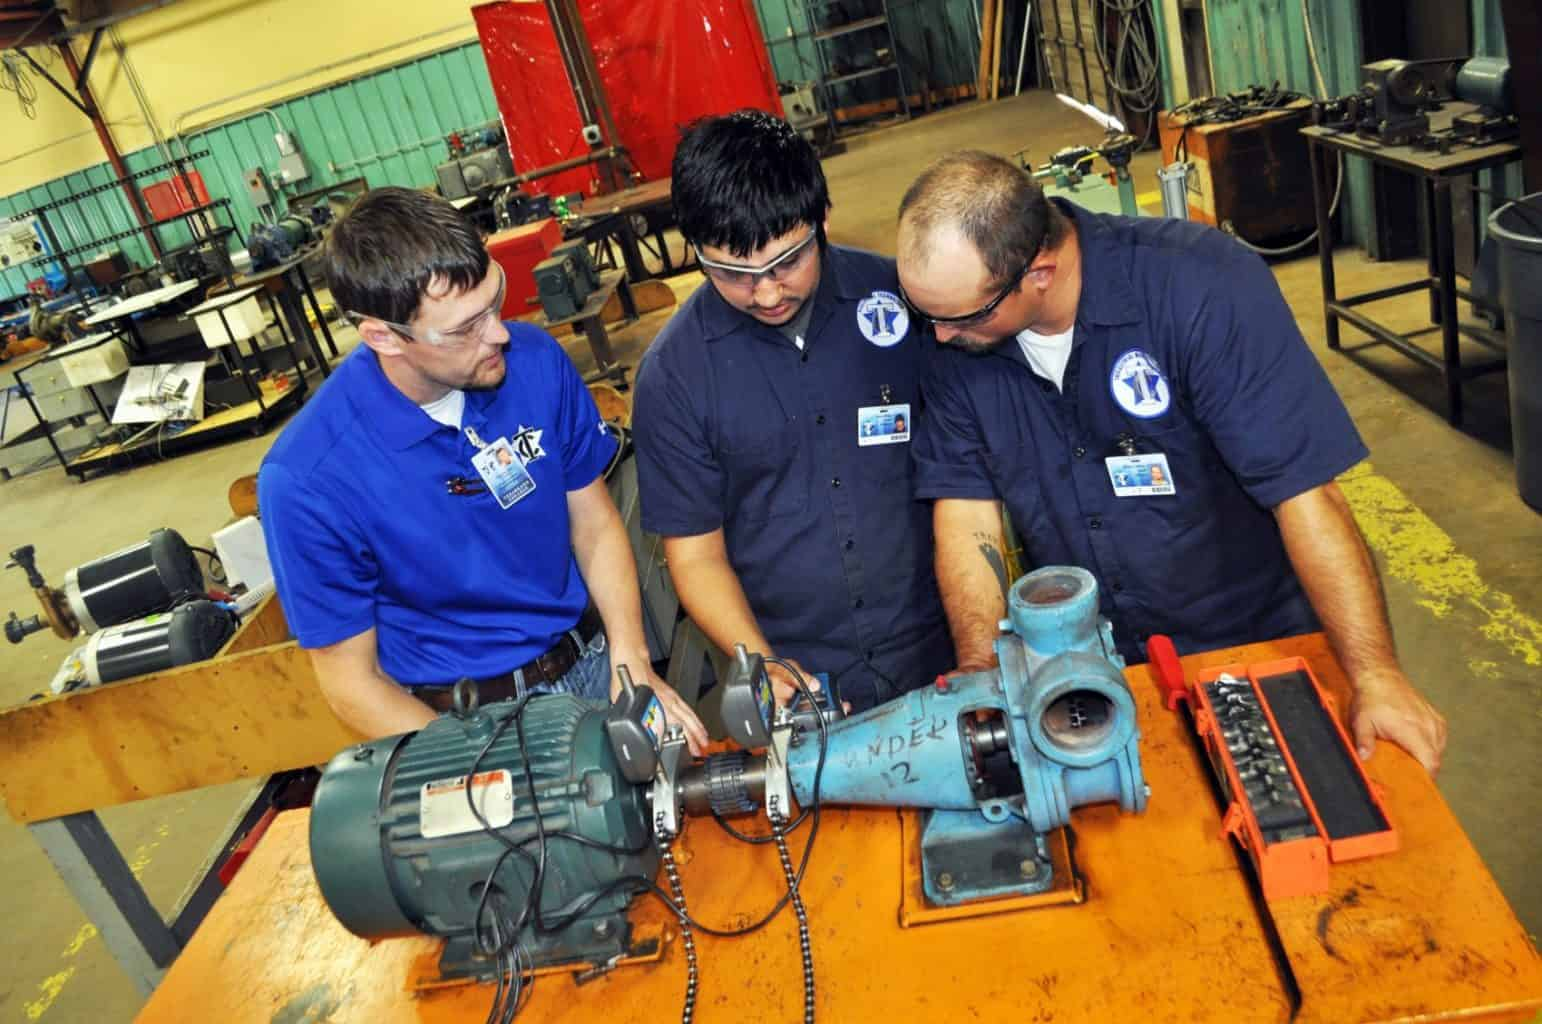 TC Announces Addition of Industrial Maintenance/Multi-Craft Certificate to Proposed Programs at TC Cass County Site